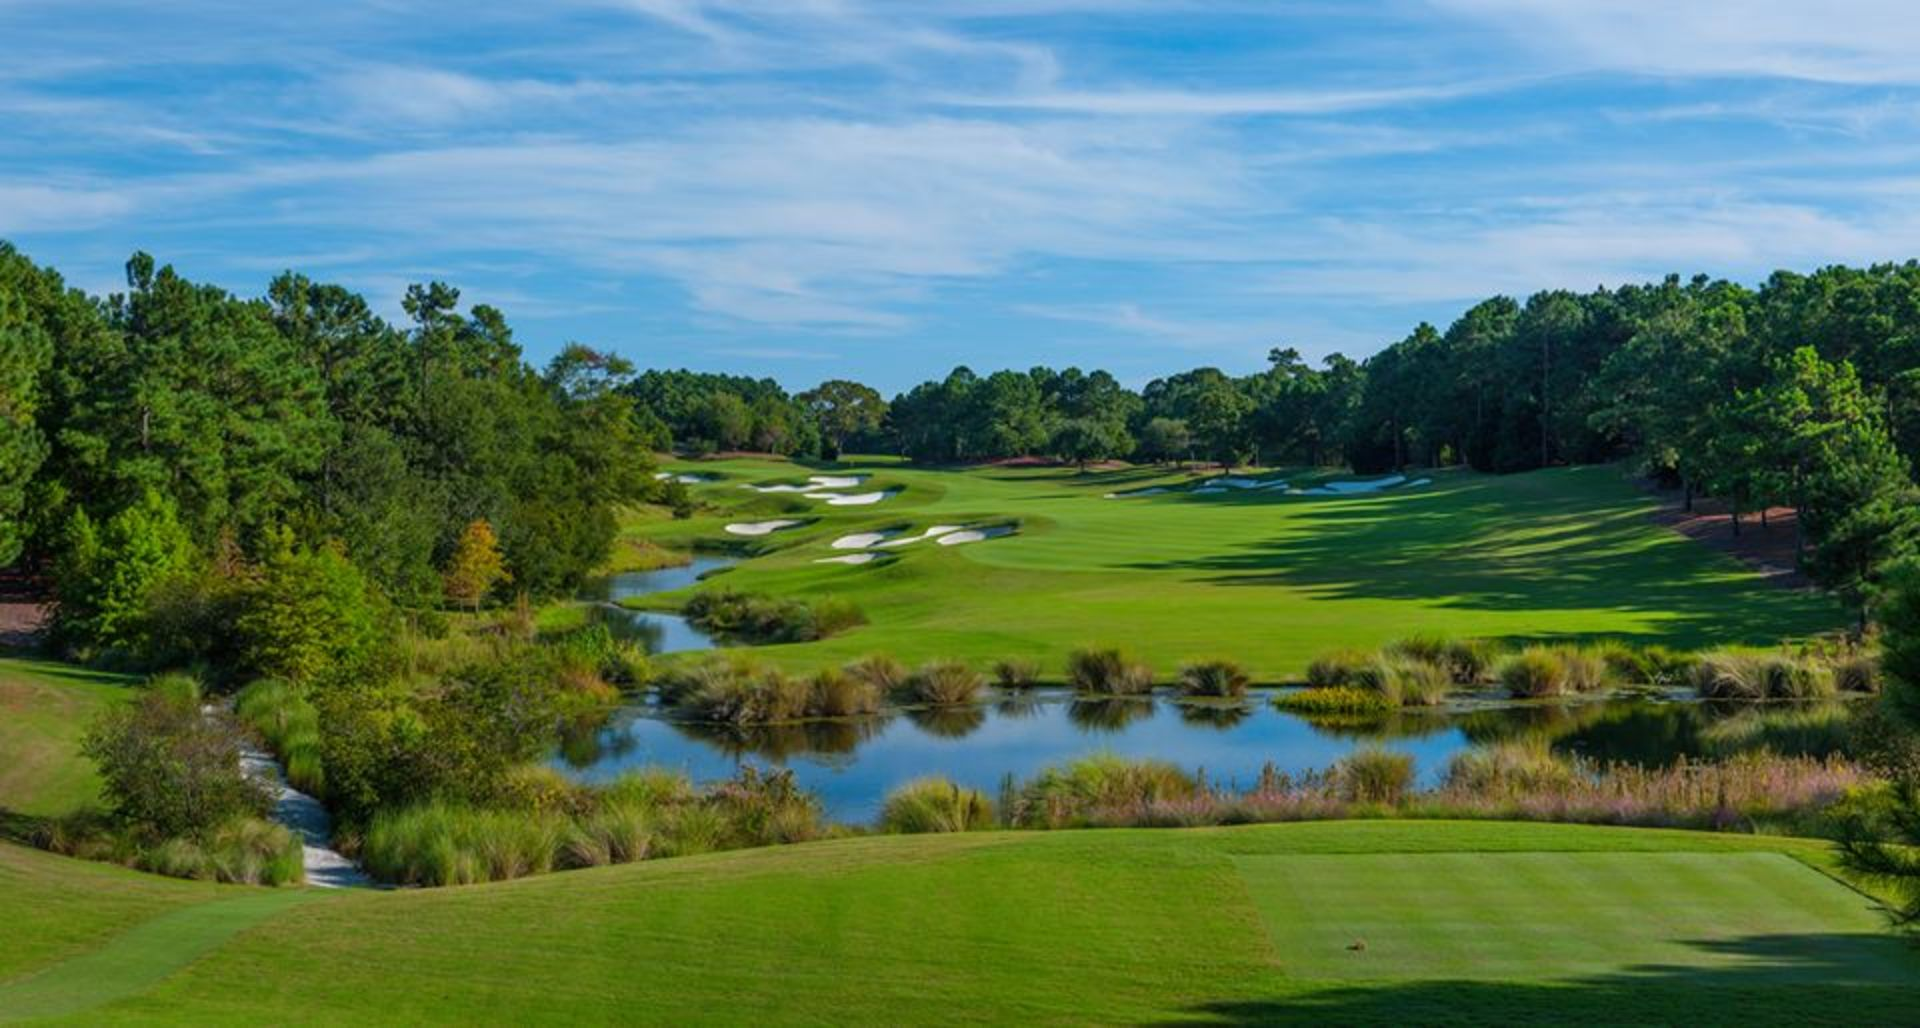 WELLS FARGO GOLF CHAMPIONSHIP AT EAGLE POINT GOLF CLUB | WILMINGTON, NC | MAY 1 – 7, 2017